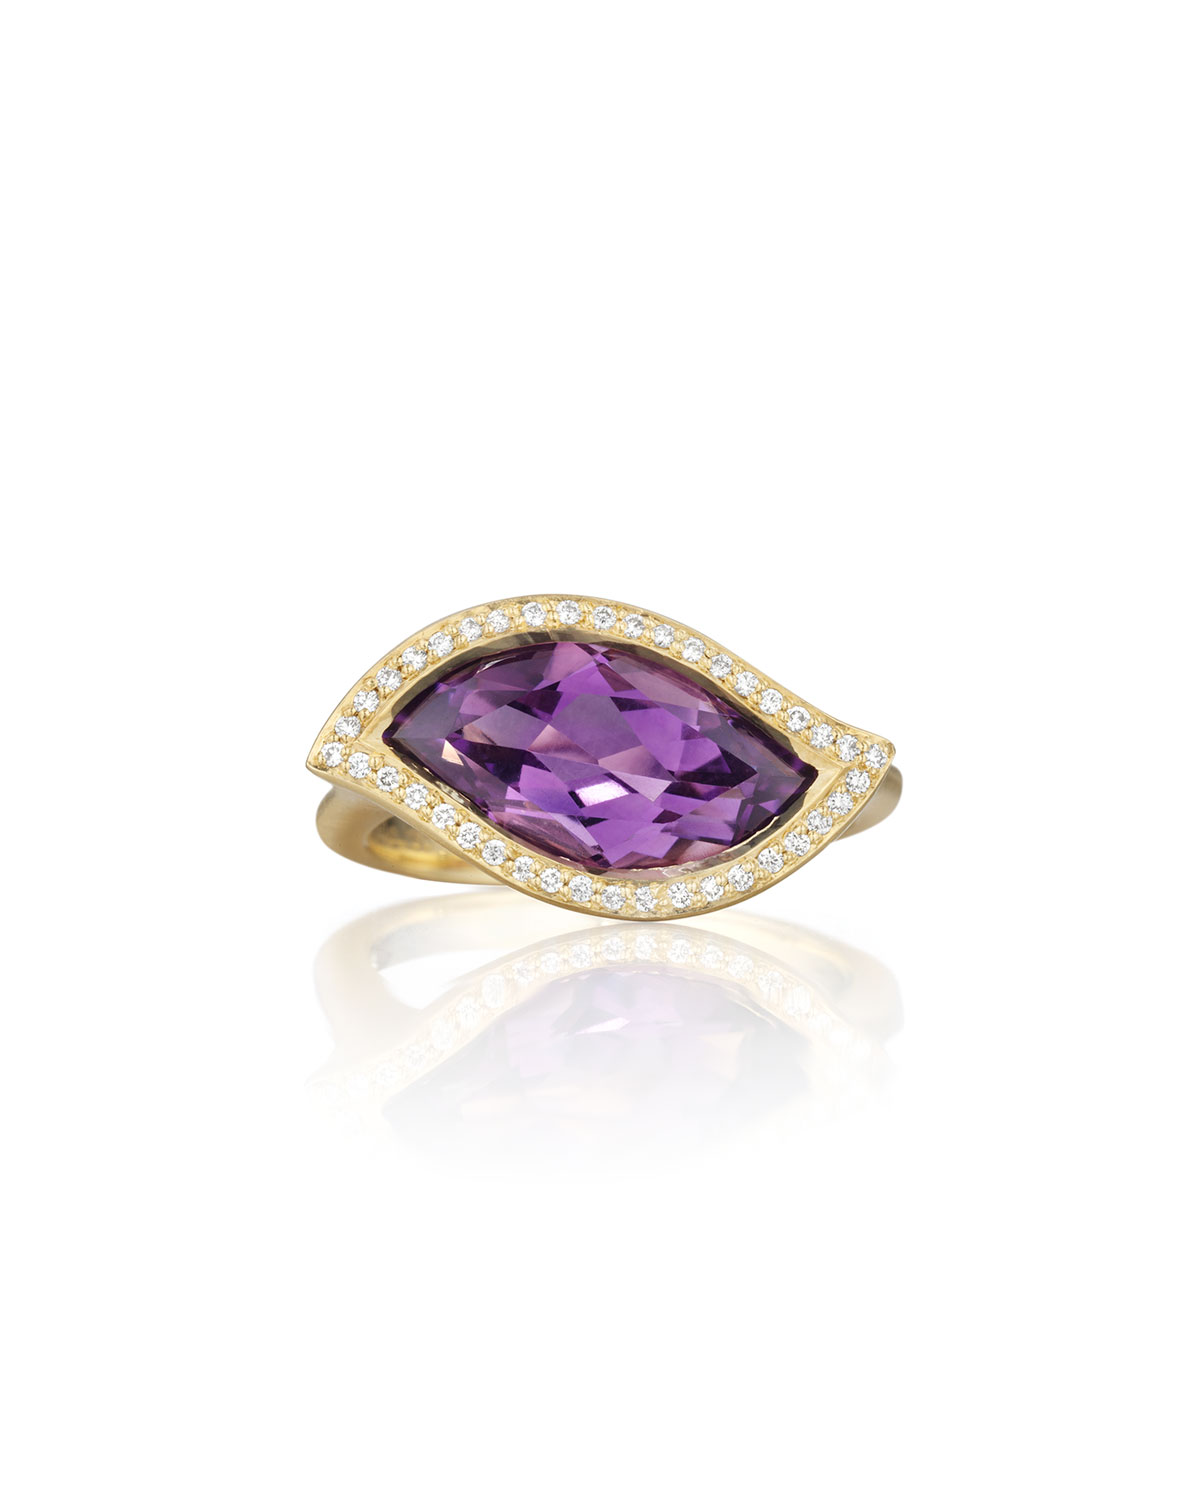 CARELLE 18K AMETHYST LEAF RING WITH DIAMONDS, SIZE 7